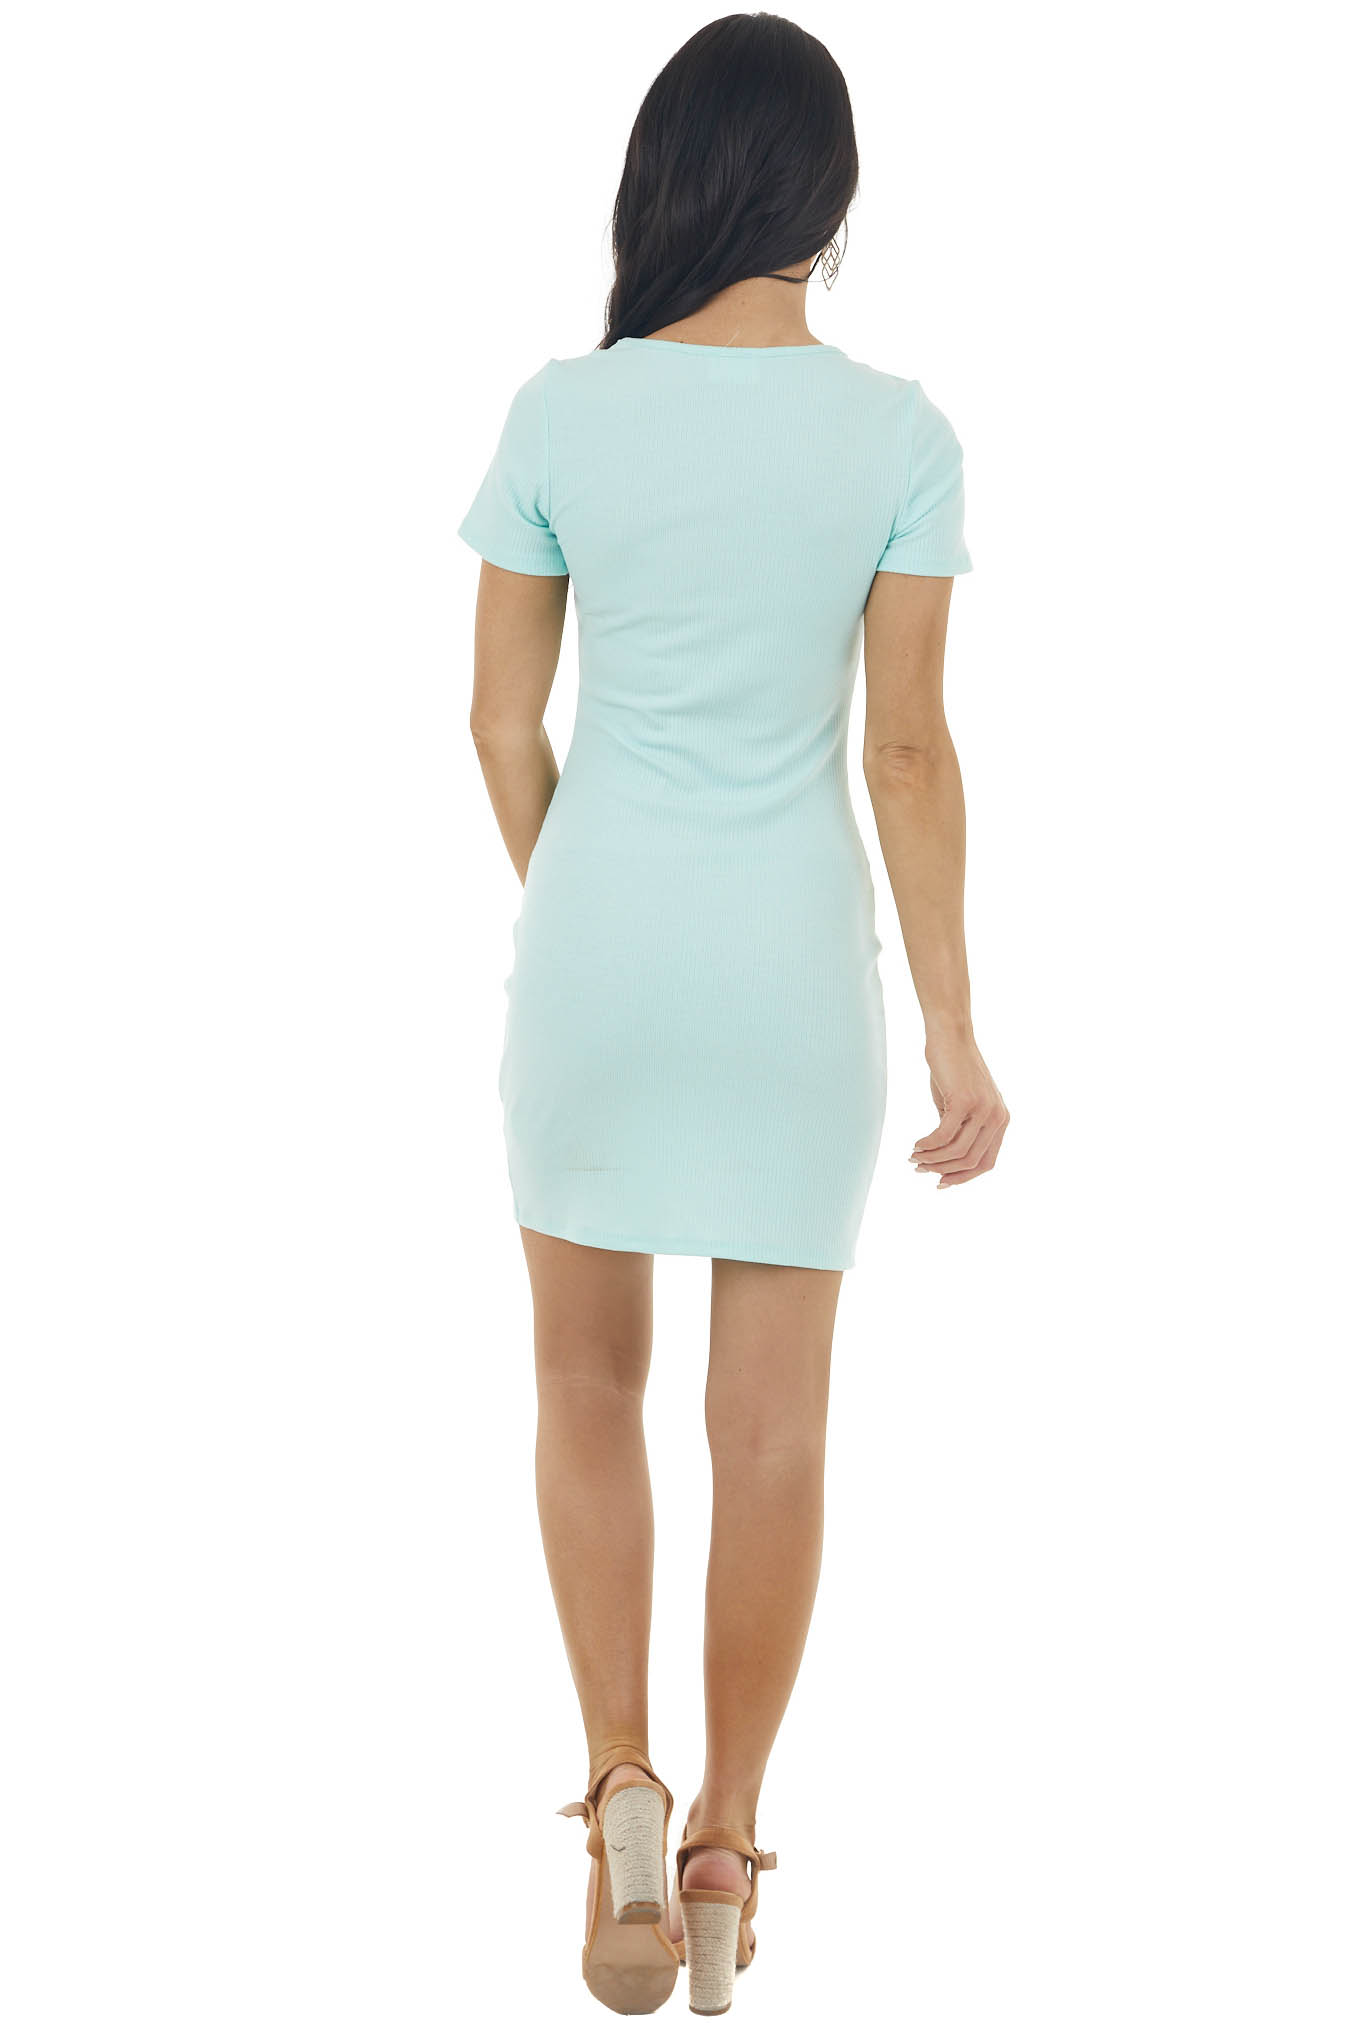 Aqua Blue Bodycon Ribbed Knit Dress with Cutout Detail